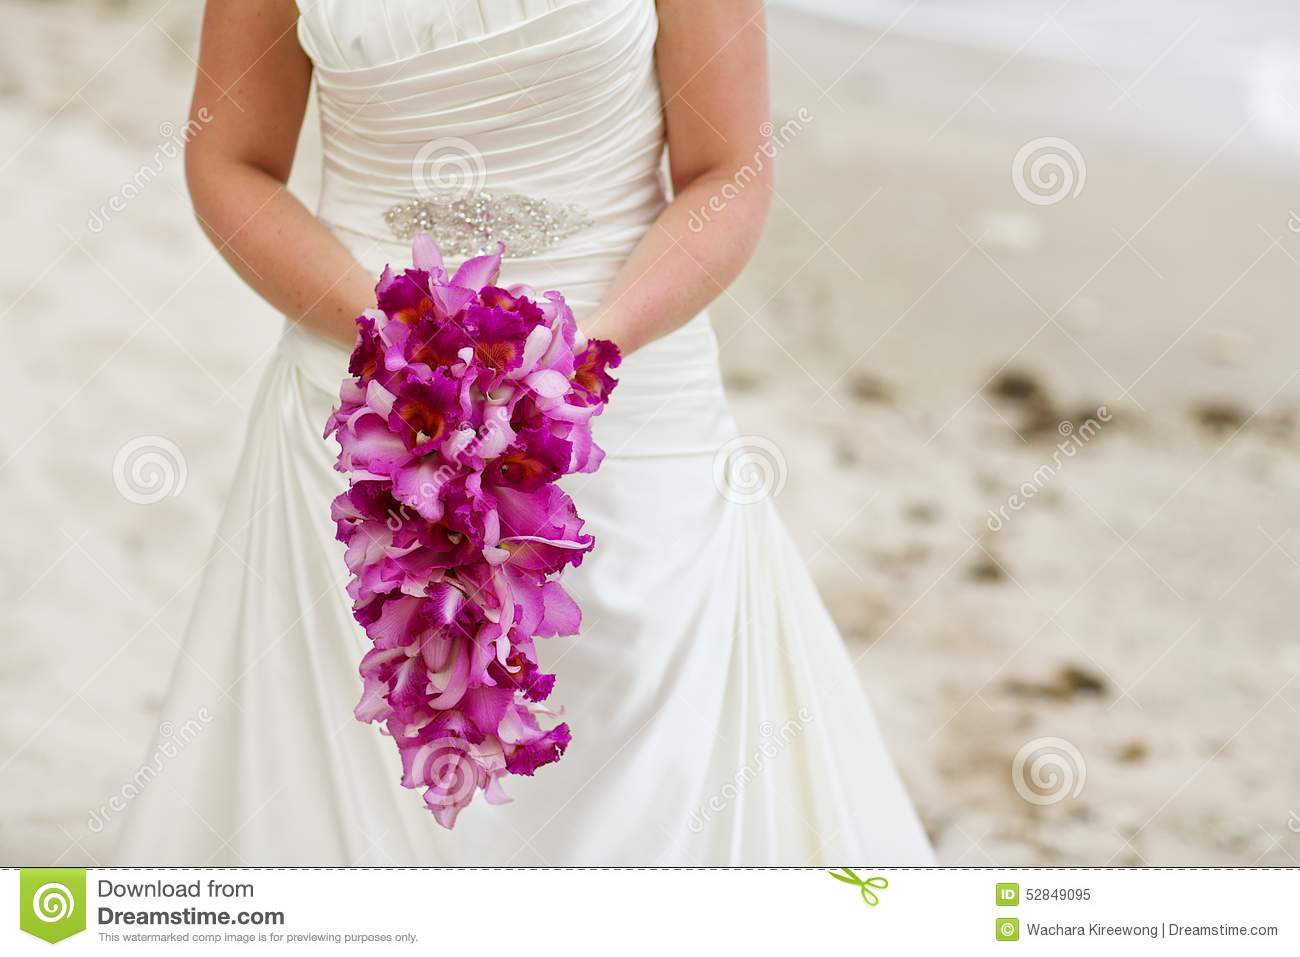 Bride Holding Purple Orchid Flower Wedding Bouquet Stock Image ...